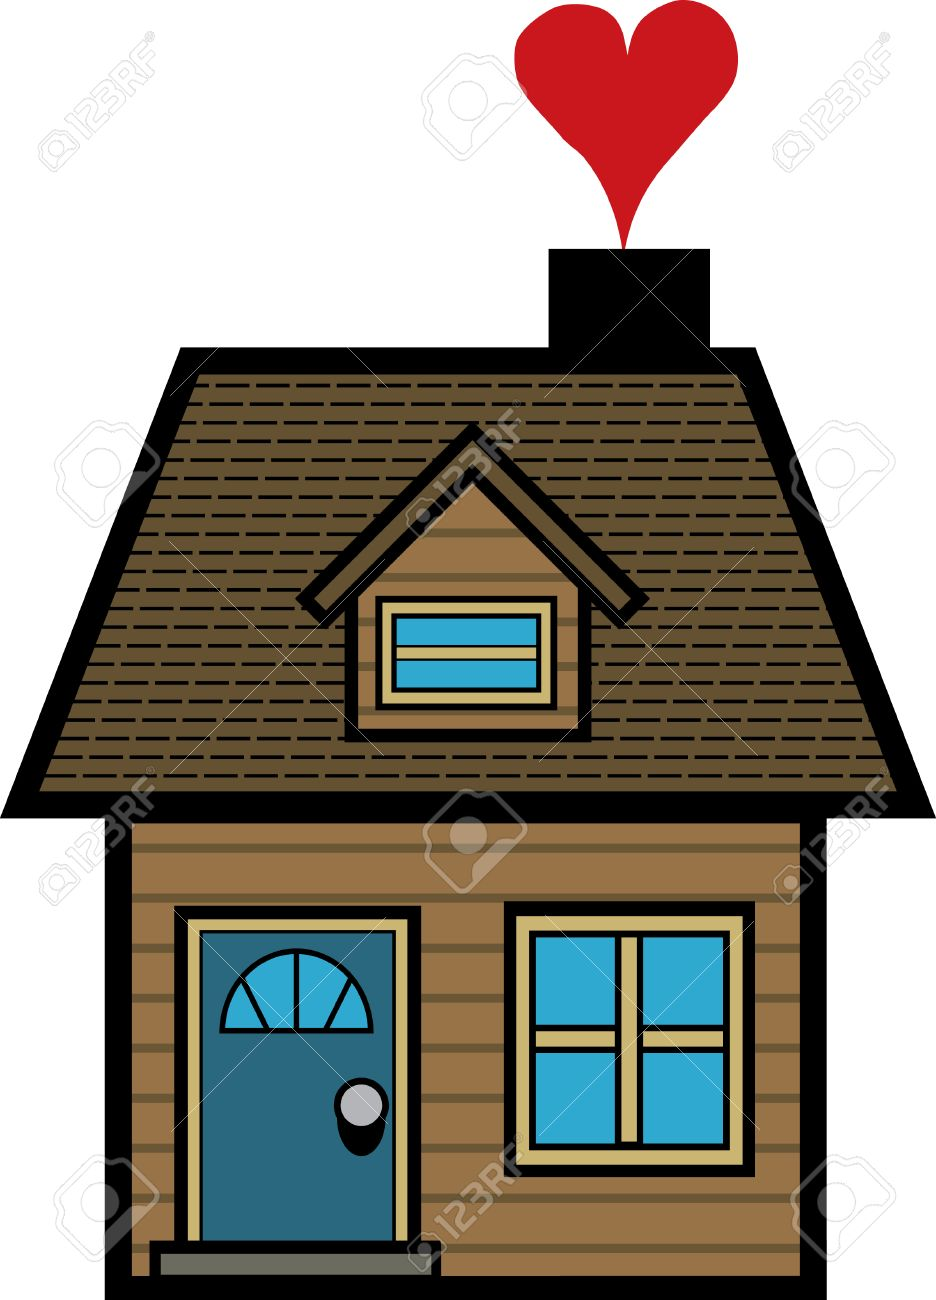 Simple Cartoon House Royalty Free Cliparts Vectors And Stock Illustration Image 6405346